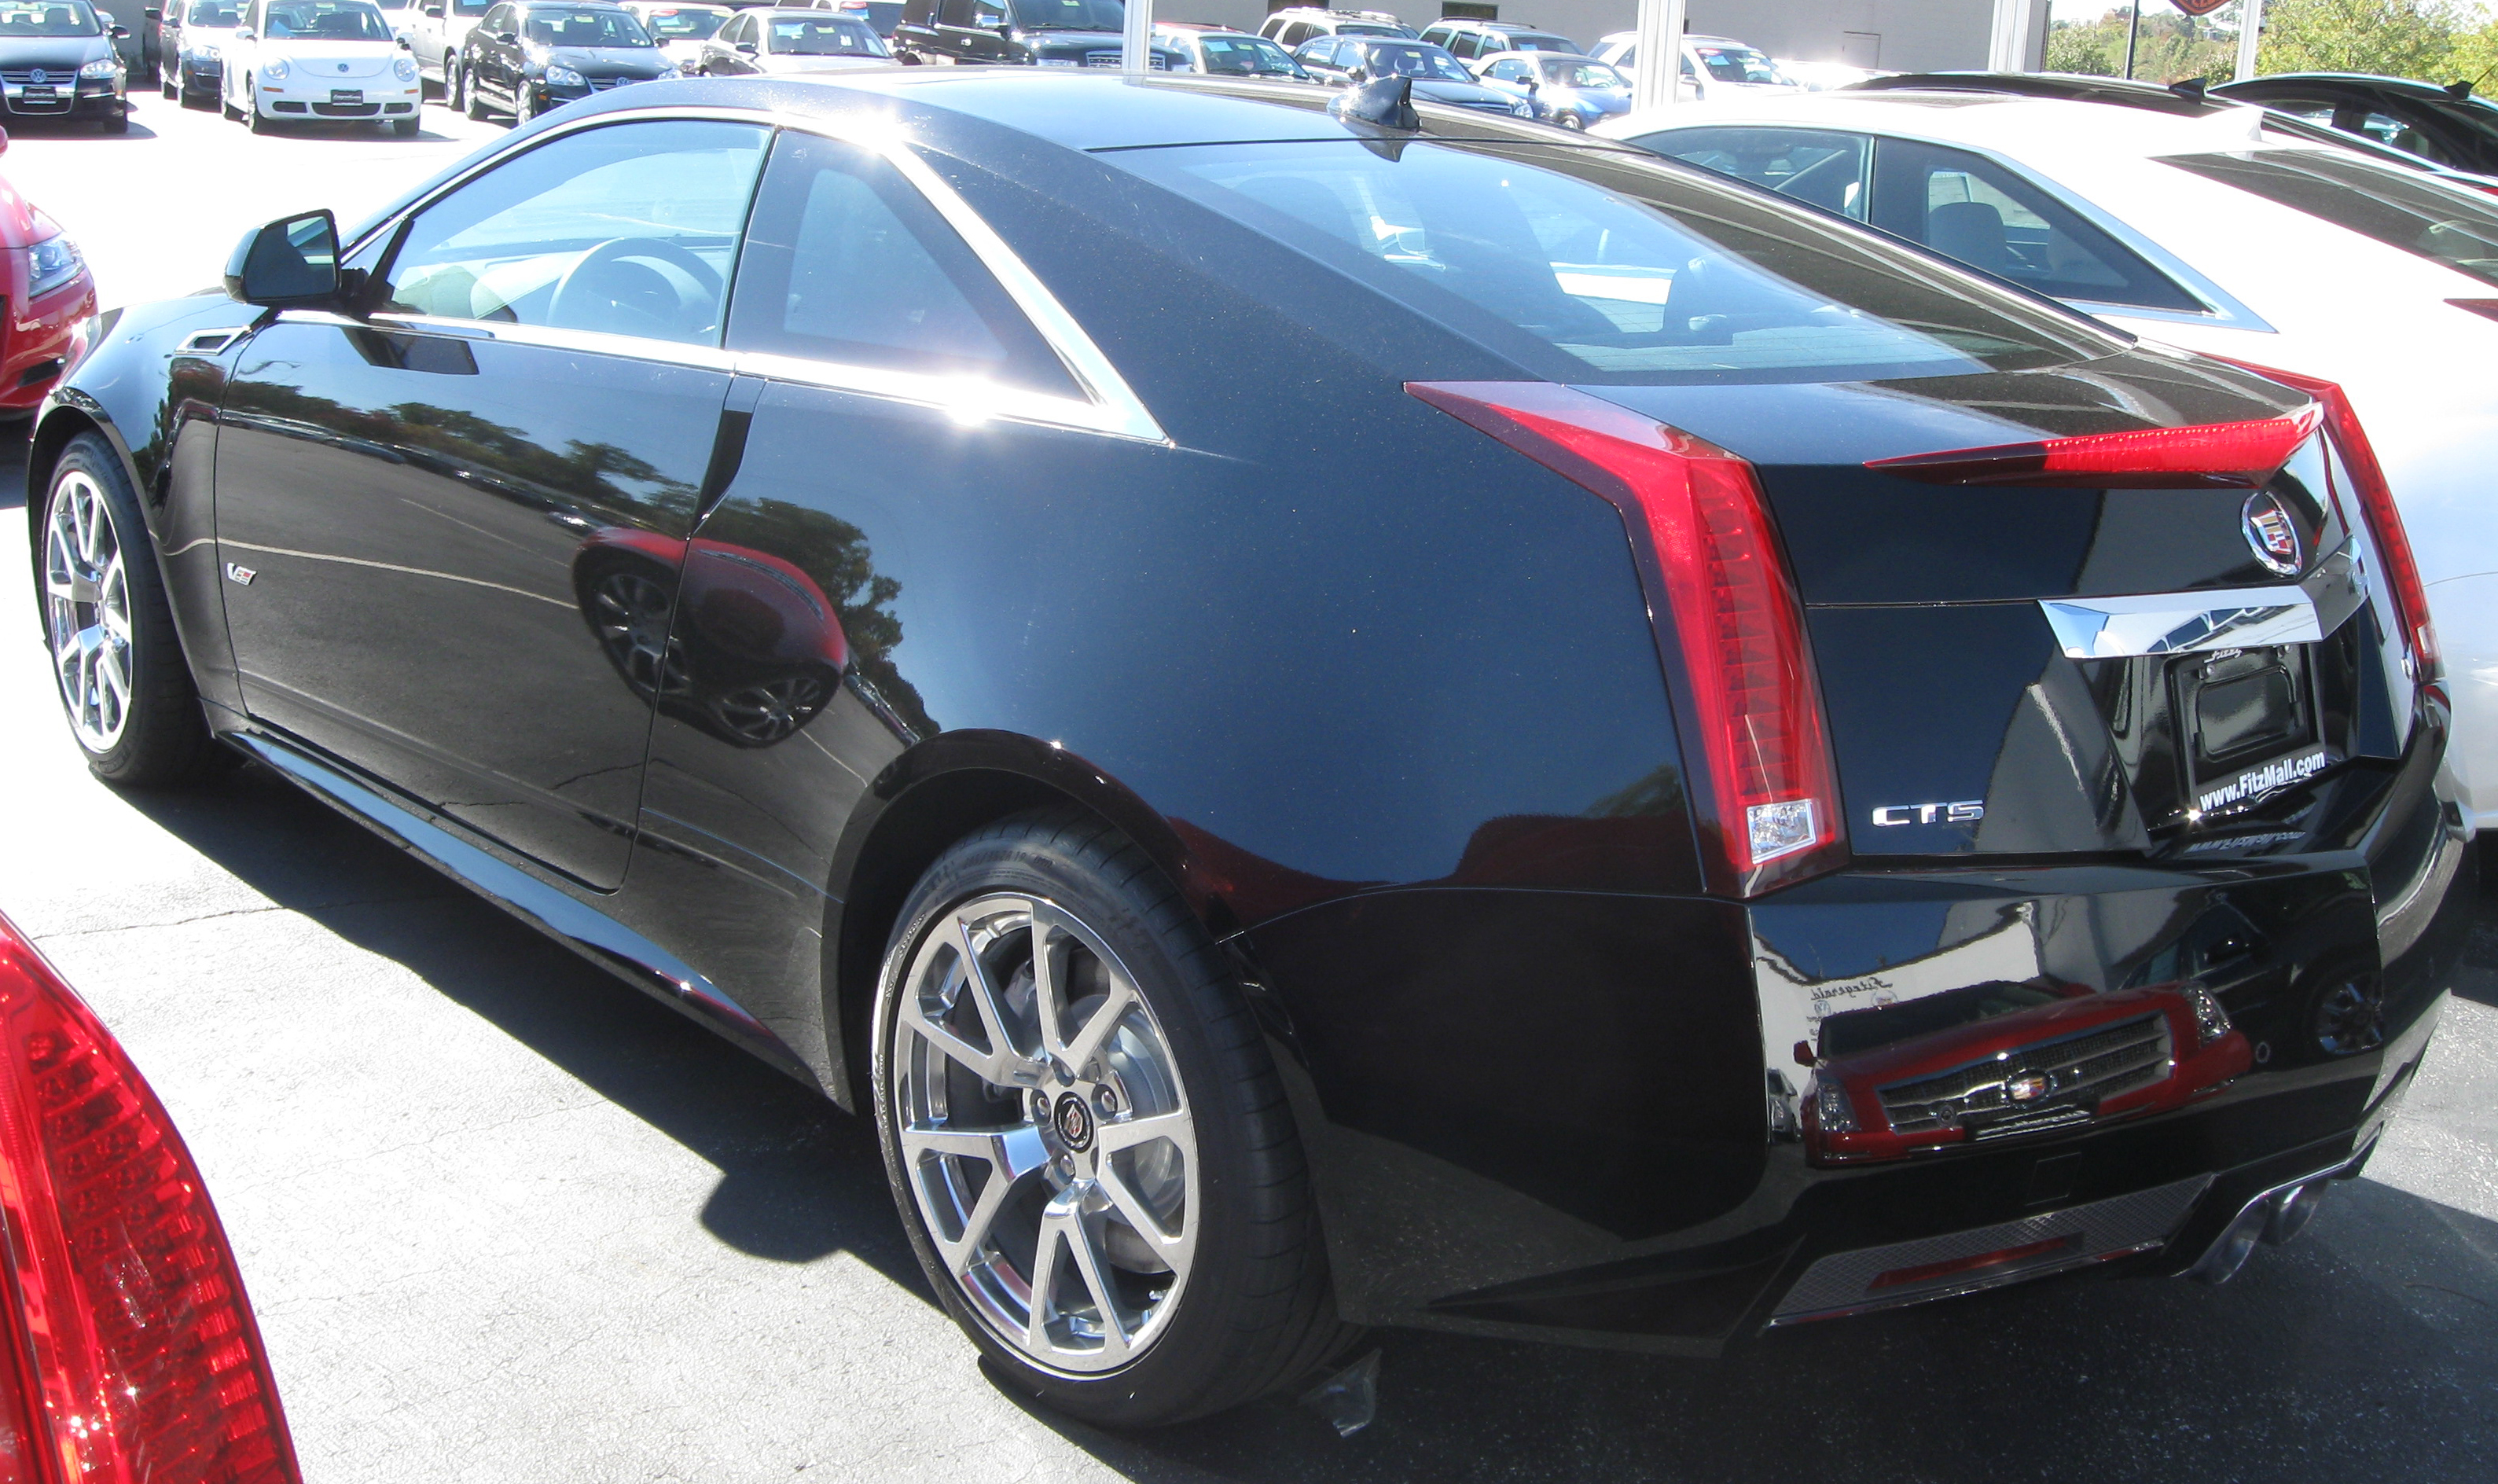 reviews drivers car s the autoweek cadillac aw performance gallery cts i log of article an